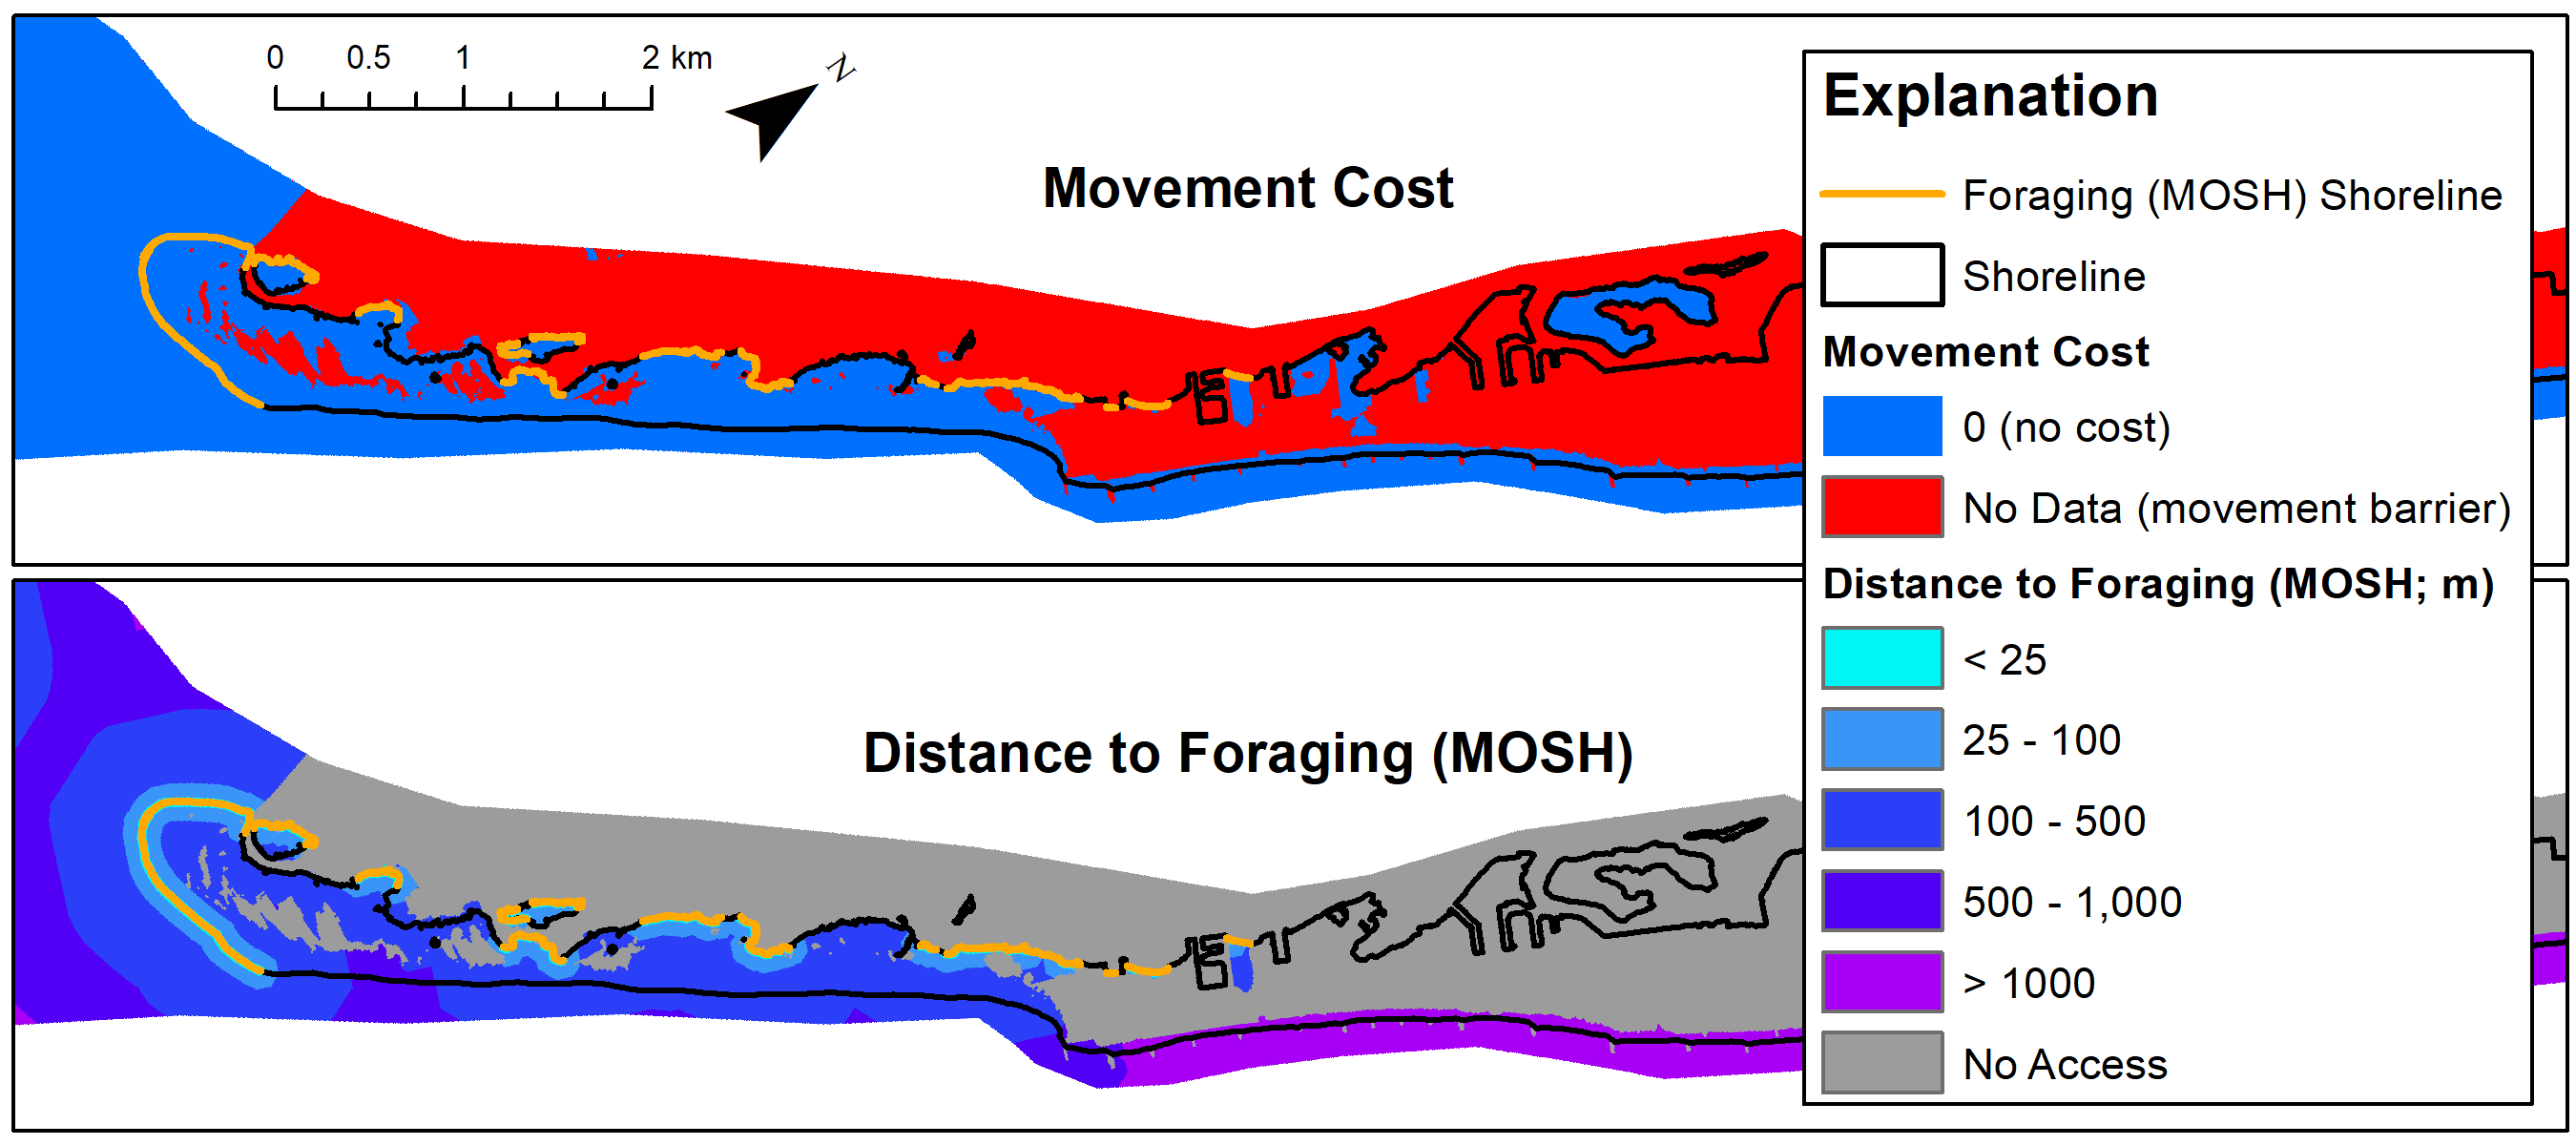 Example of the movement cost (resistance) layer and the least-cost path distance to low-energy foraging areas used by piping plovers on Edwin B. Forsythe NWR, New Jersey. The foraging shoreline is displayed in orange overlaid on both layers.